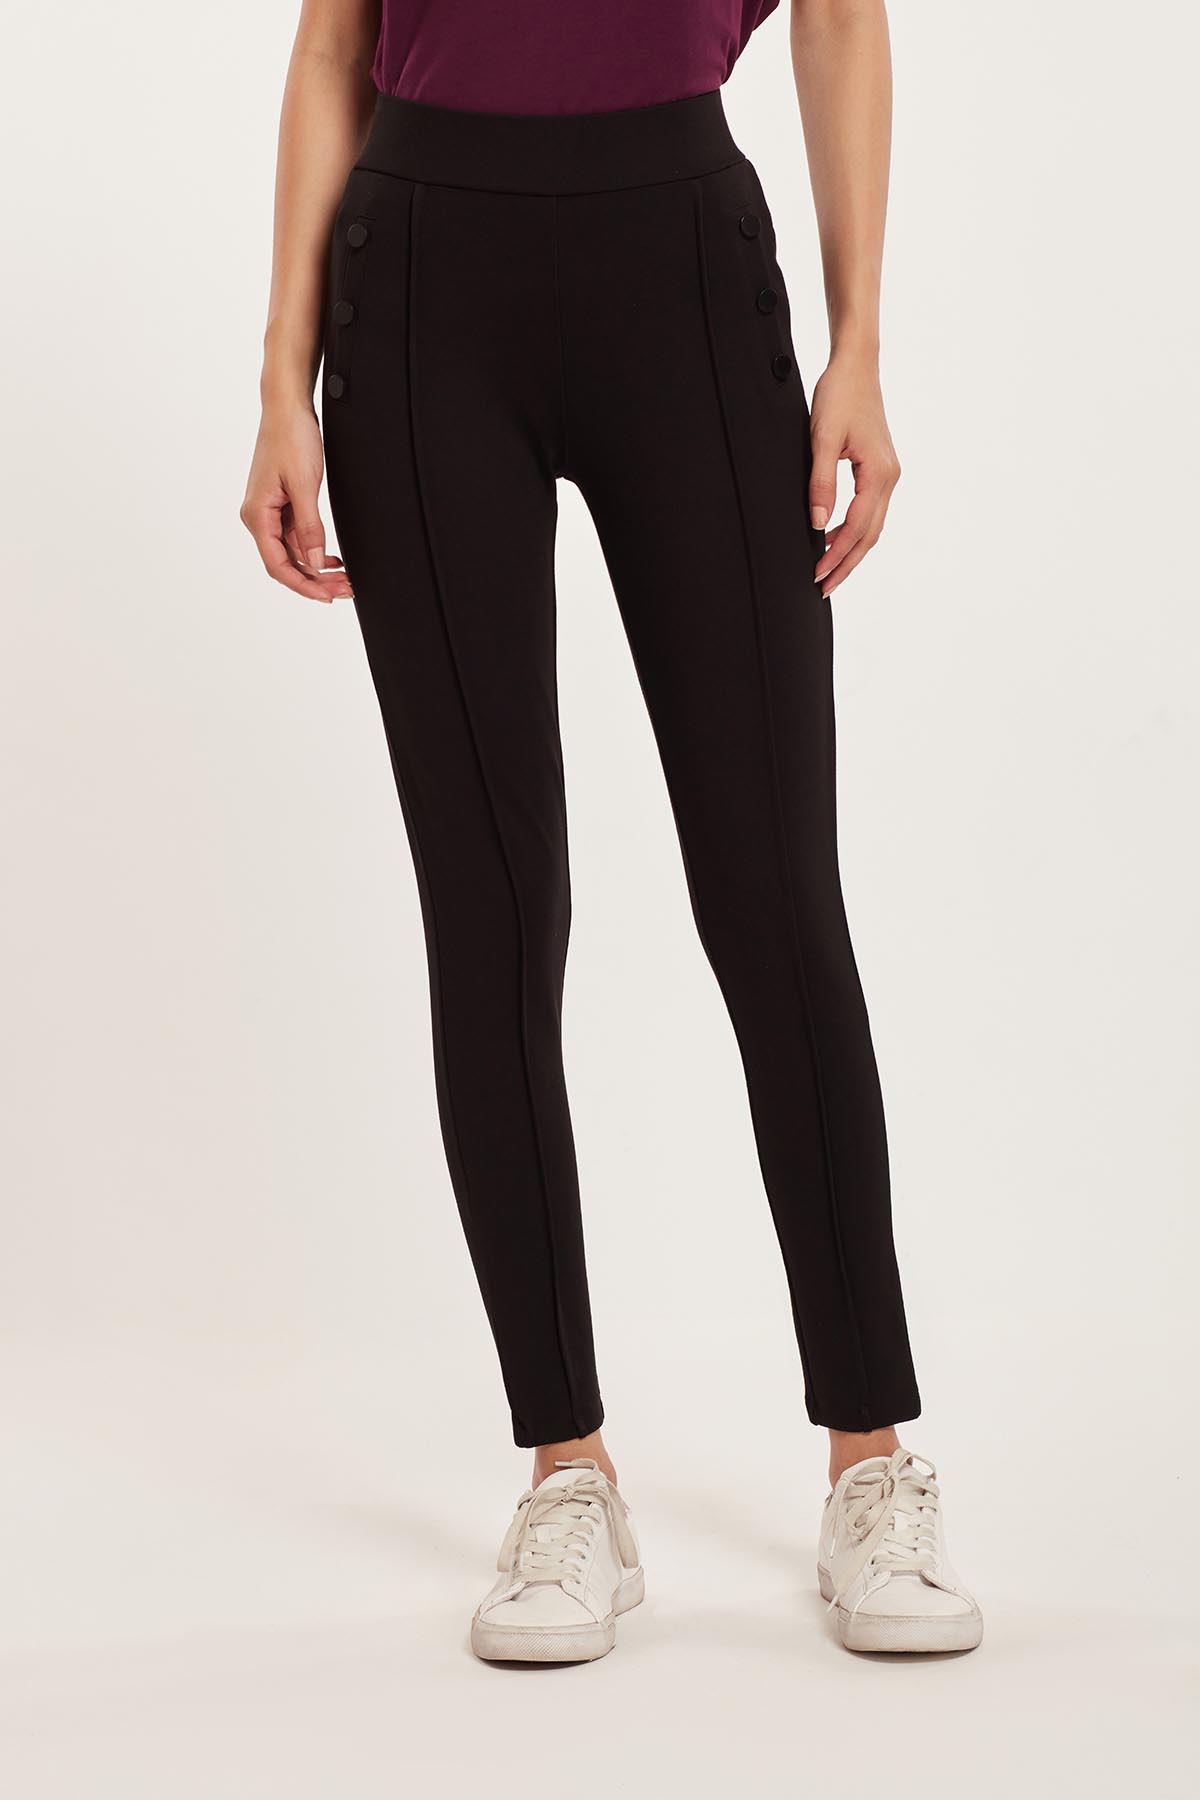 Cover Story Women Casual Wear Black Jegging